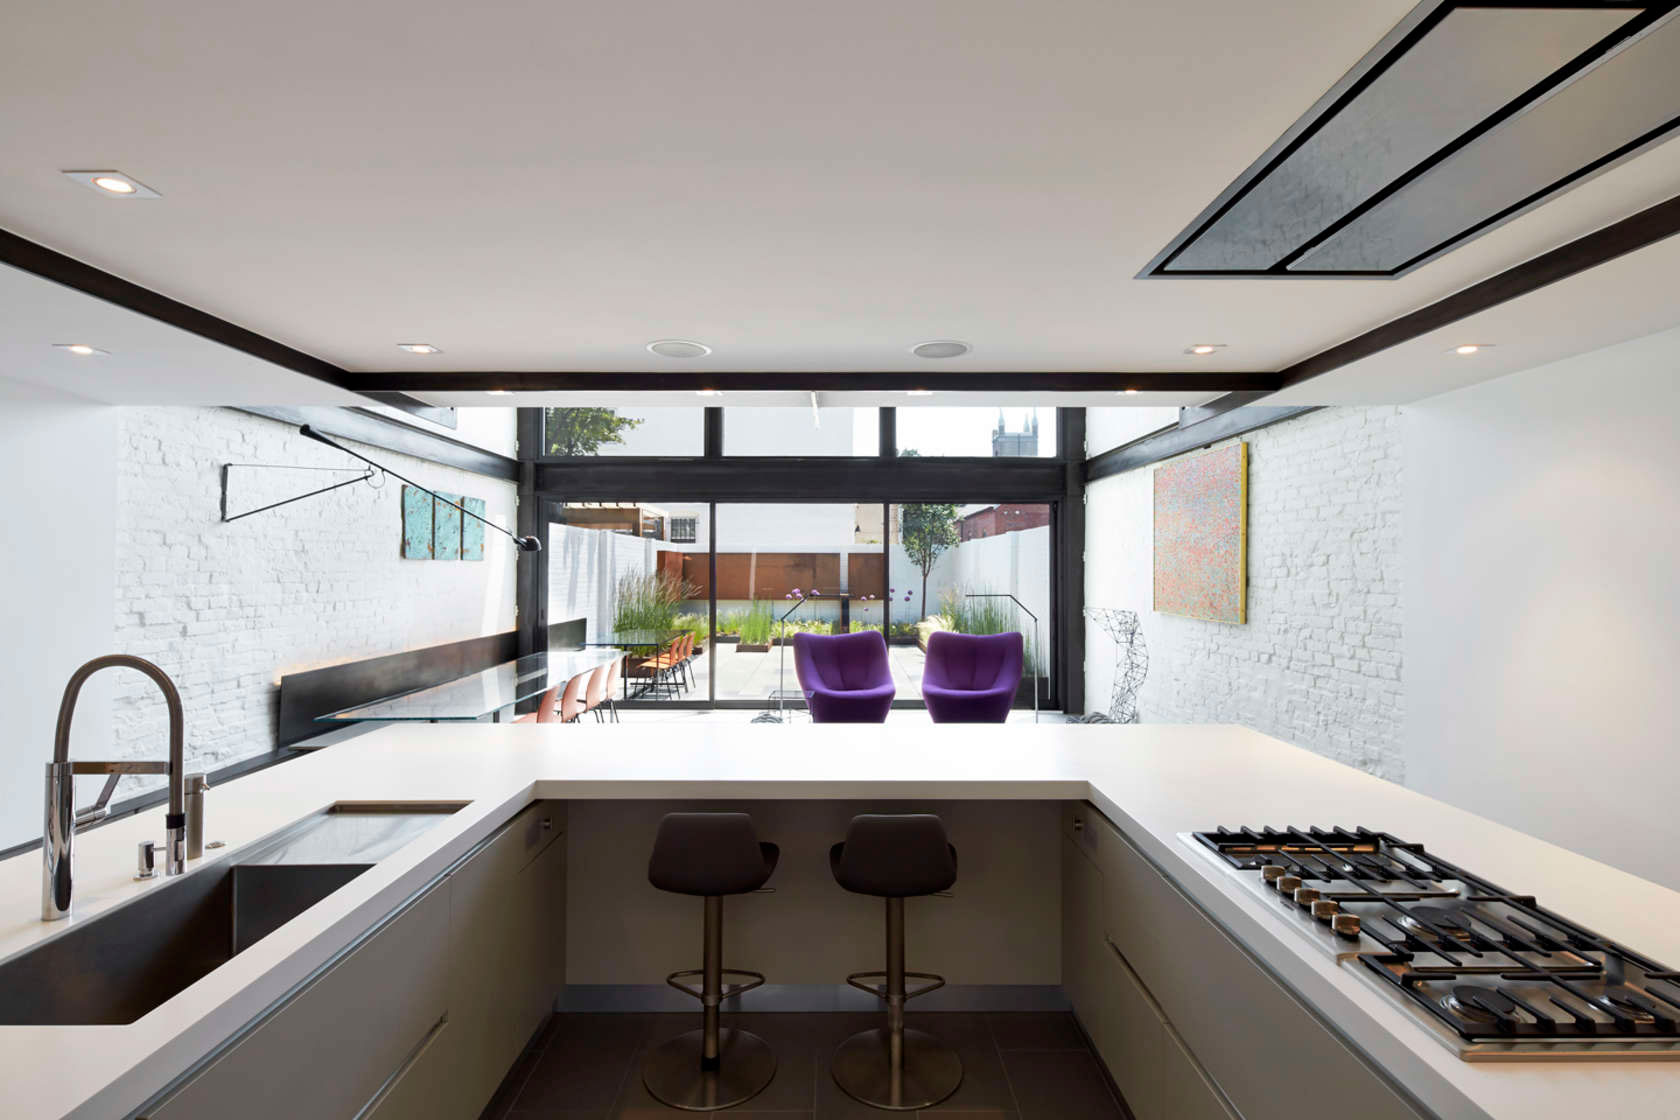 Salt and Pepper House in Washington, D.C. by KUBE Architecture-08